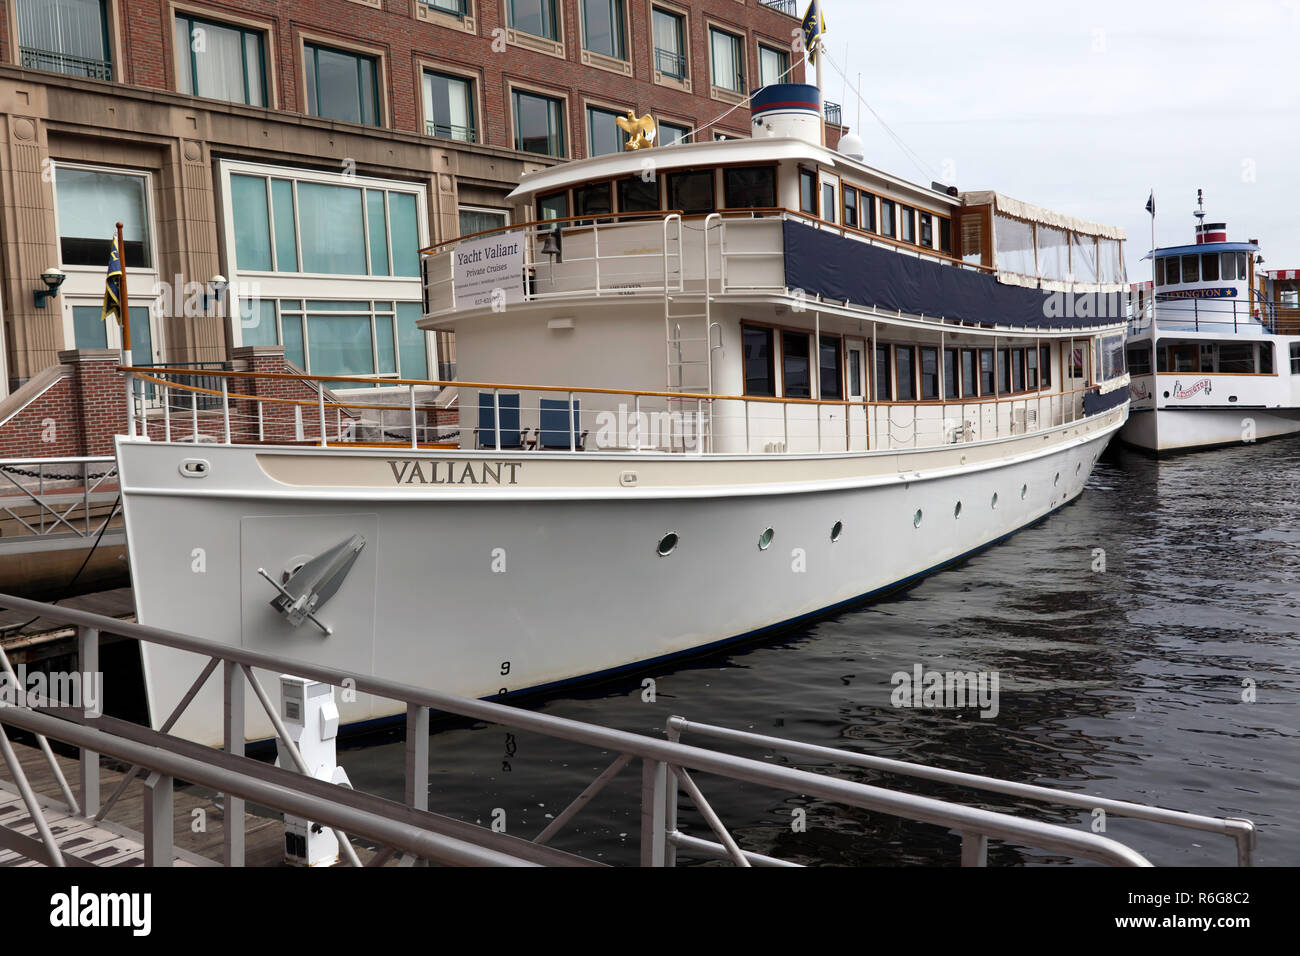 The Valiant, a classic 1920's, 97foot  motor yacht, operated by the Charles Riverboat Company, Boston, Massachusetts,  USA Stock Photo